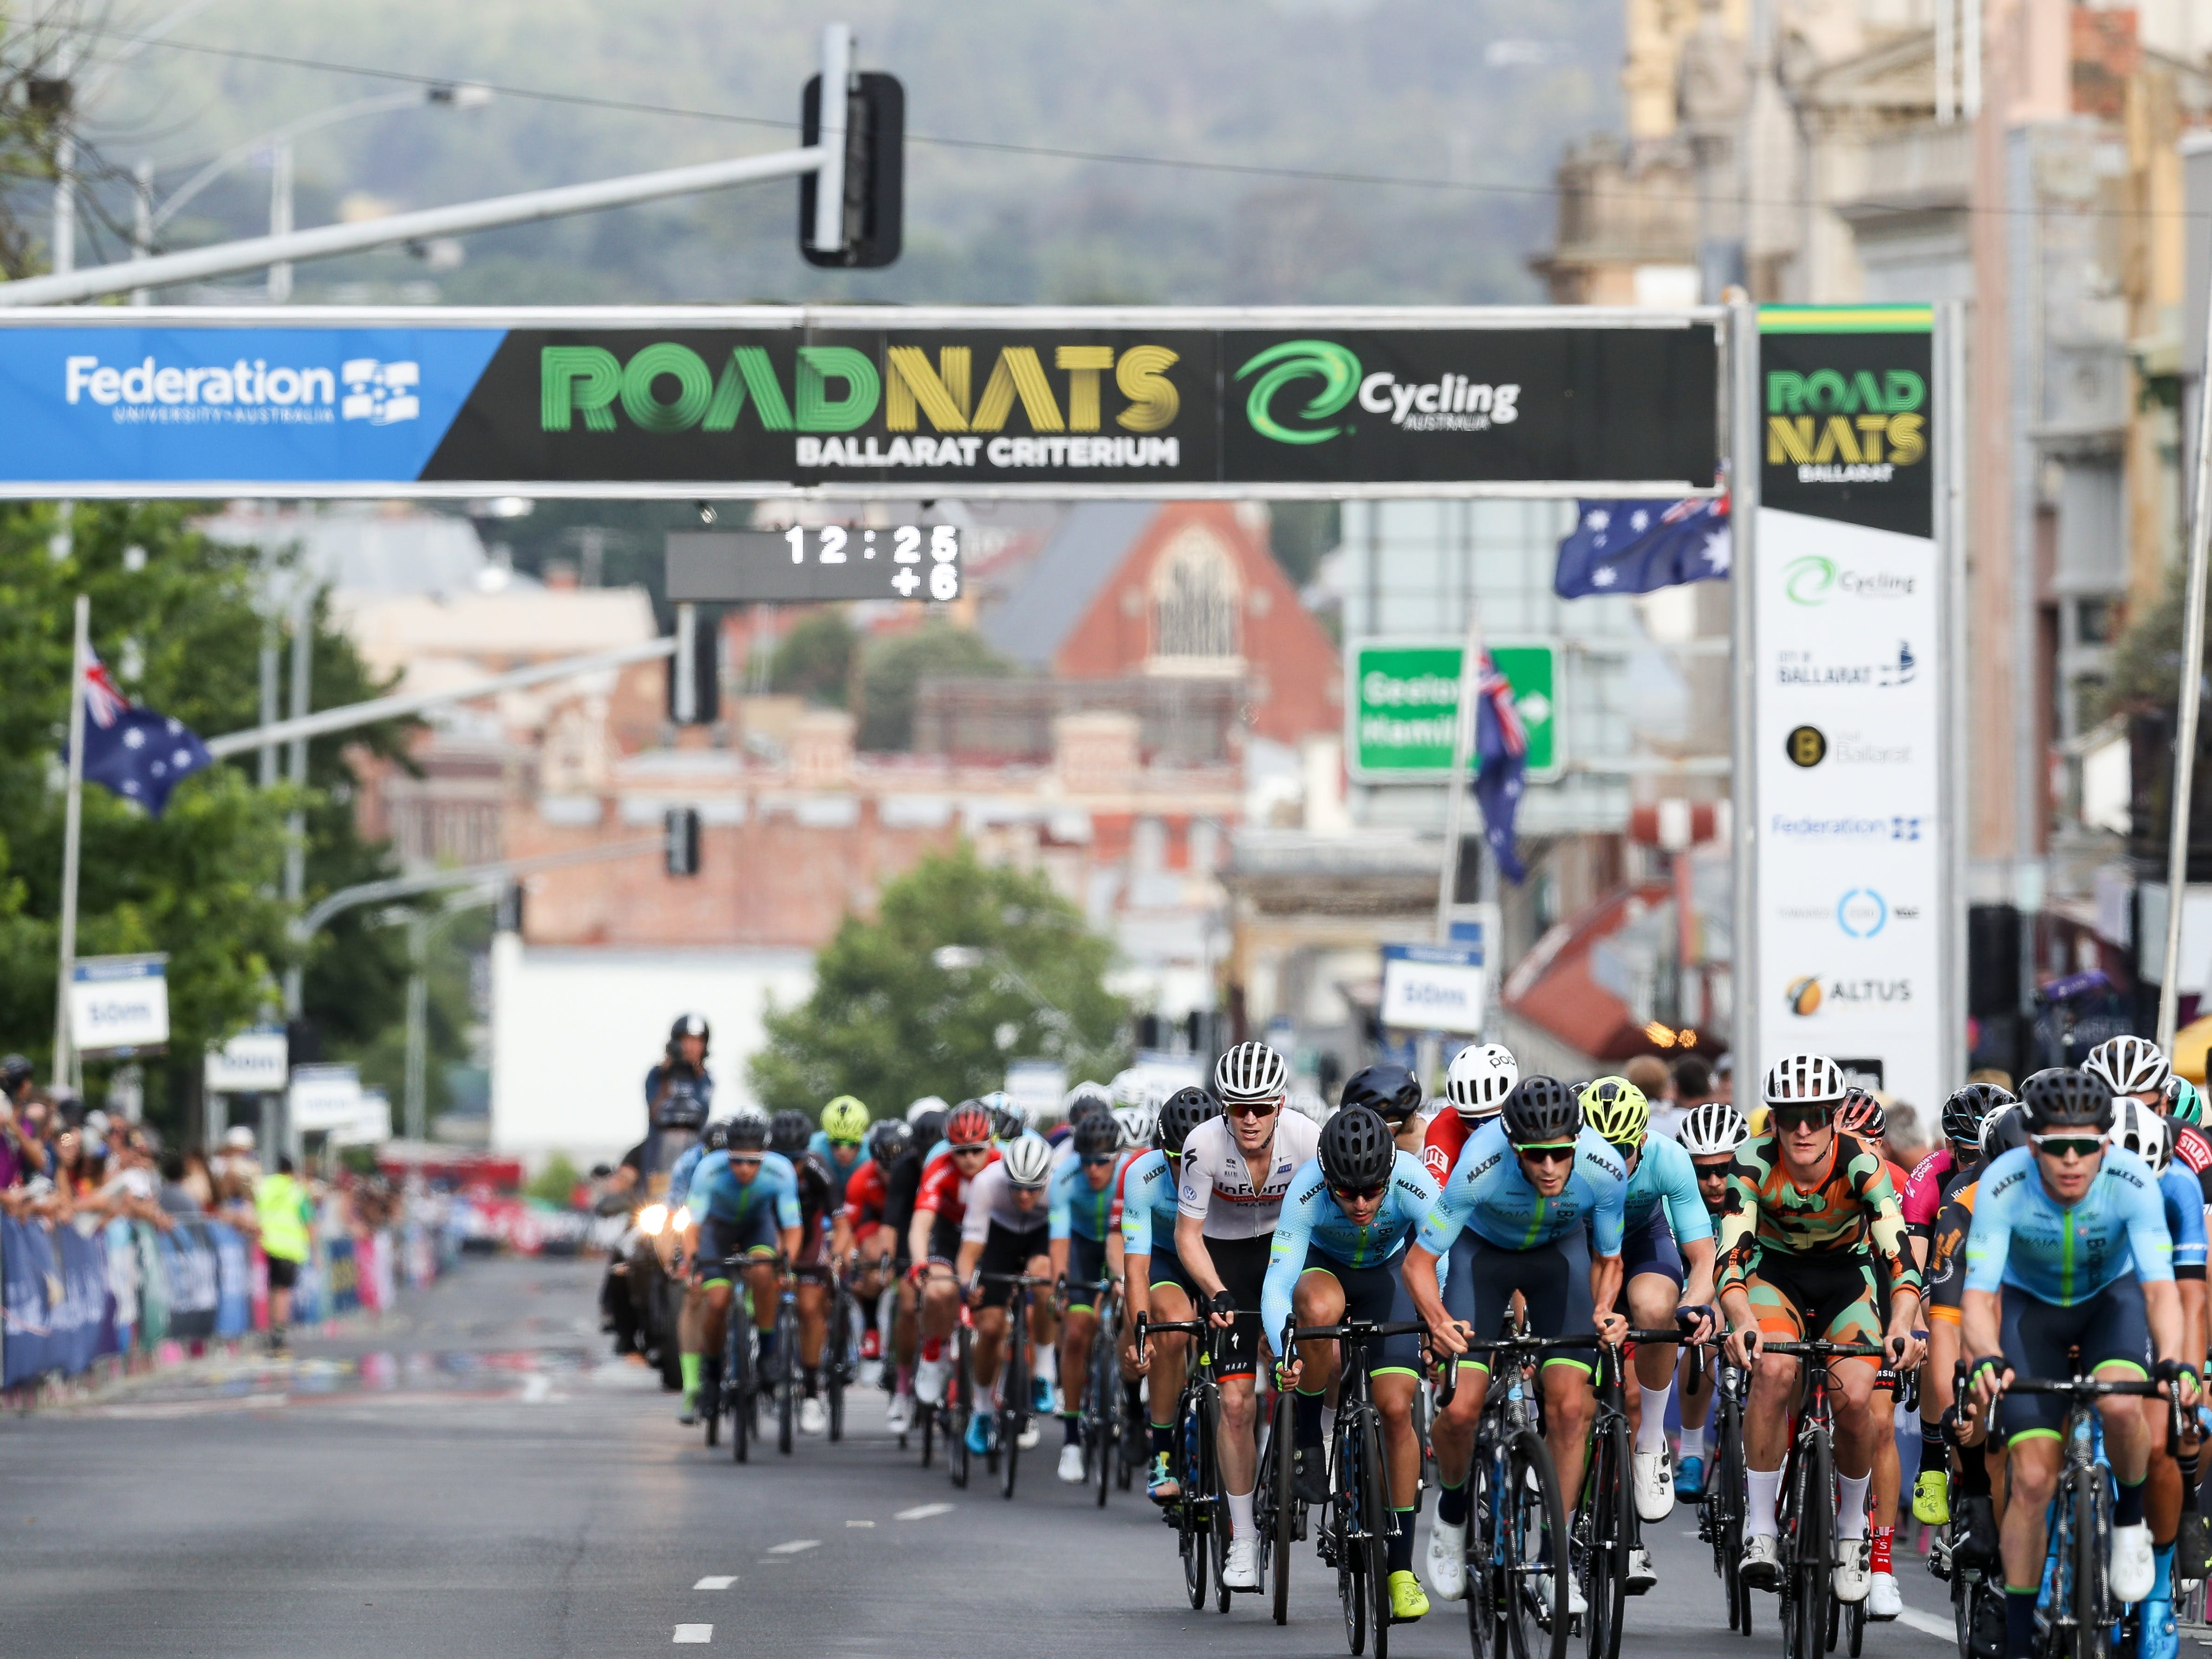 Federation University Criterium National Championships - Ballarat - Surfers Gold Coast